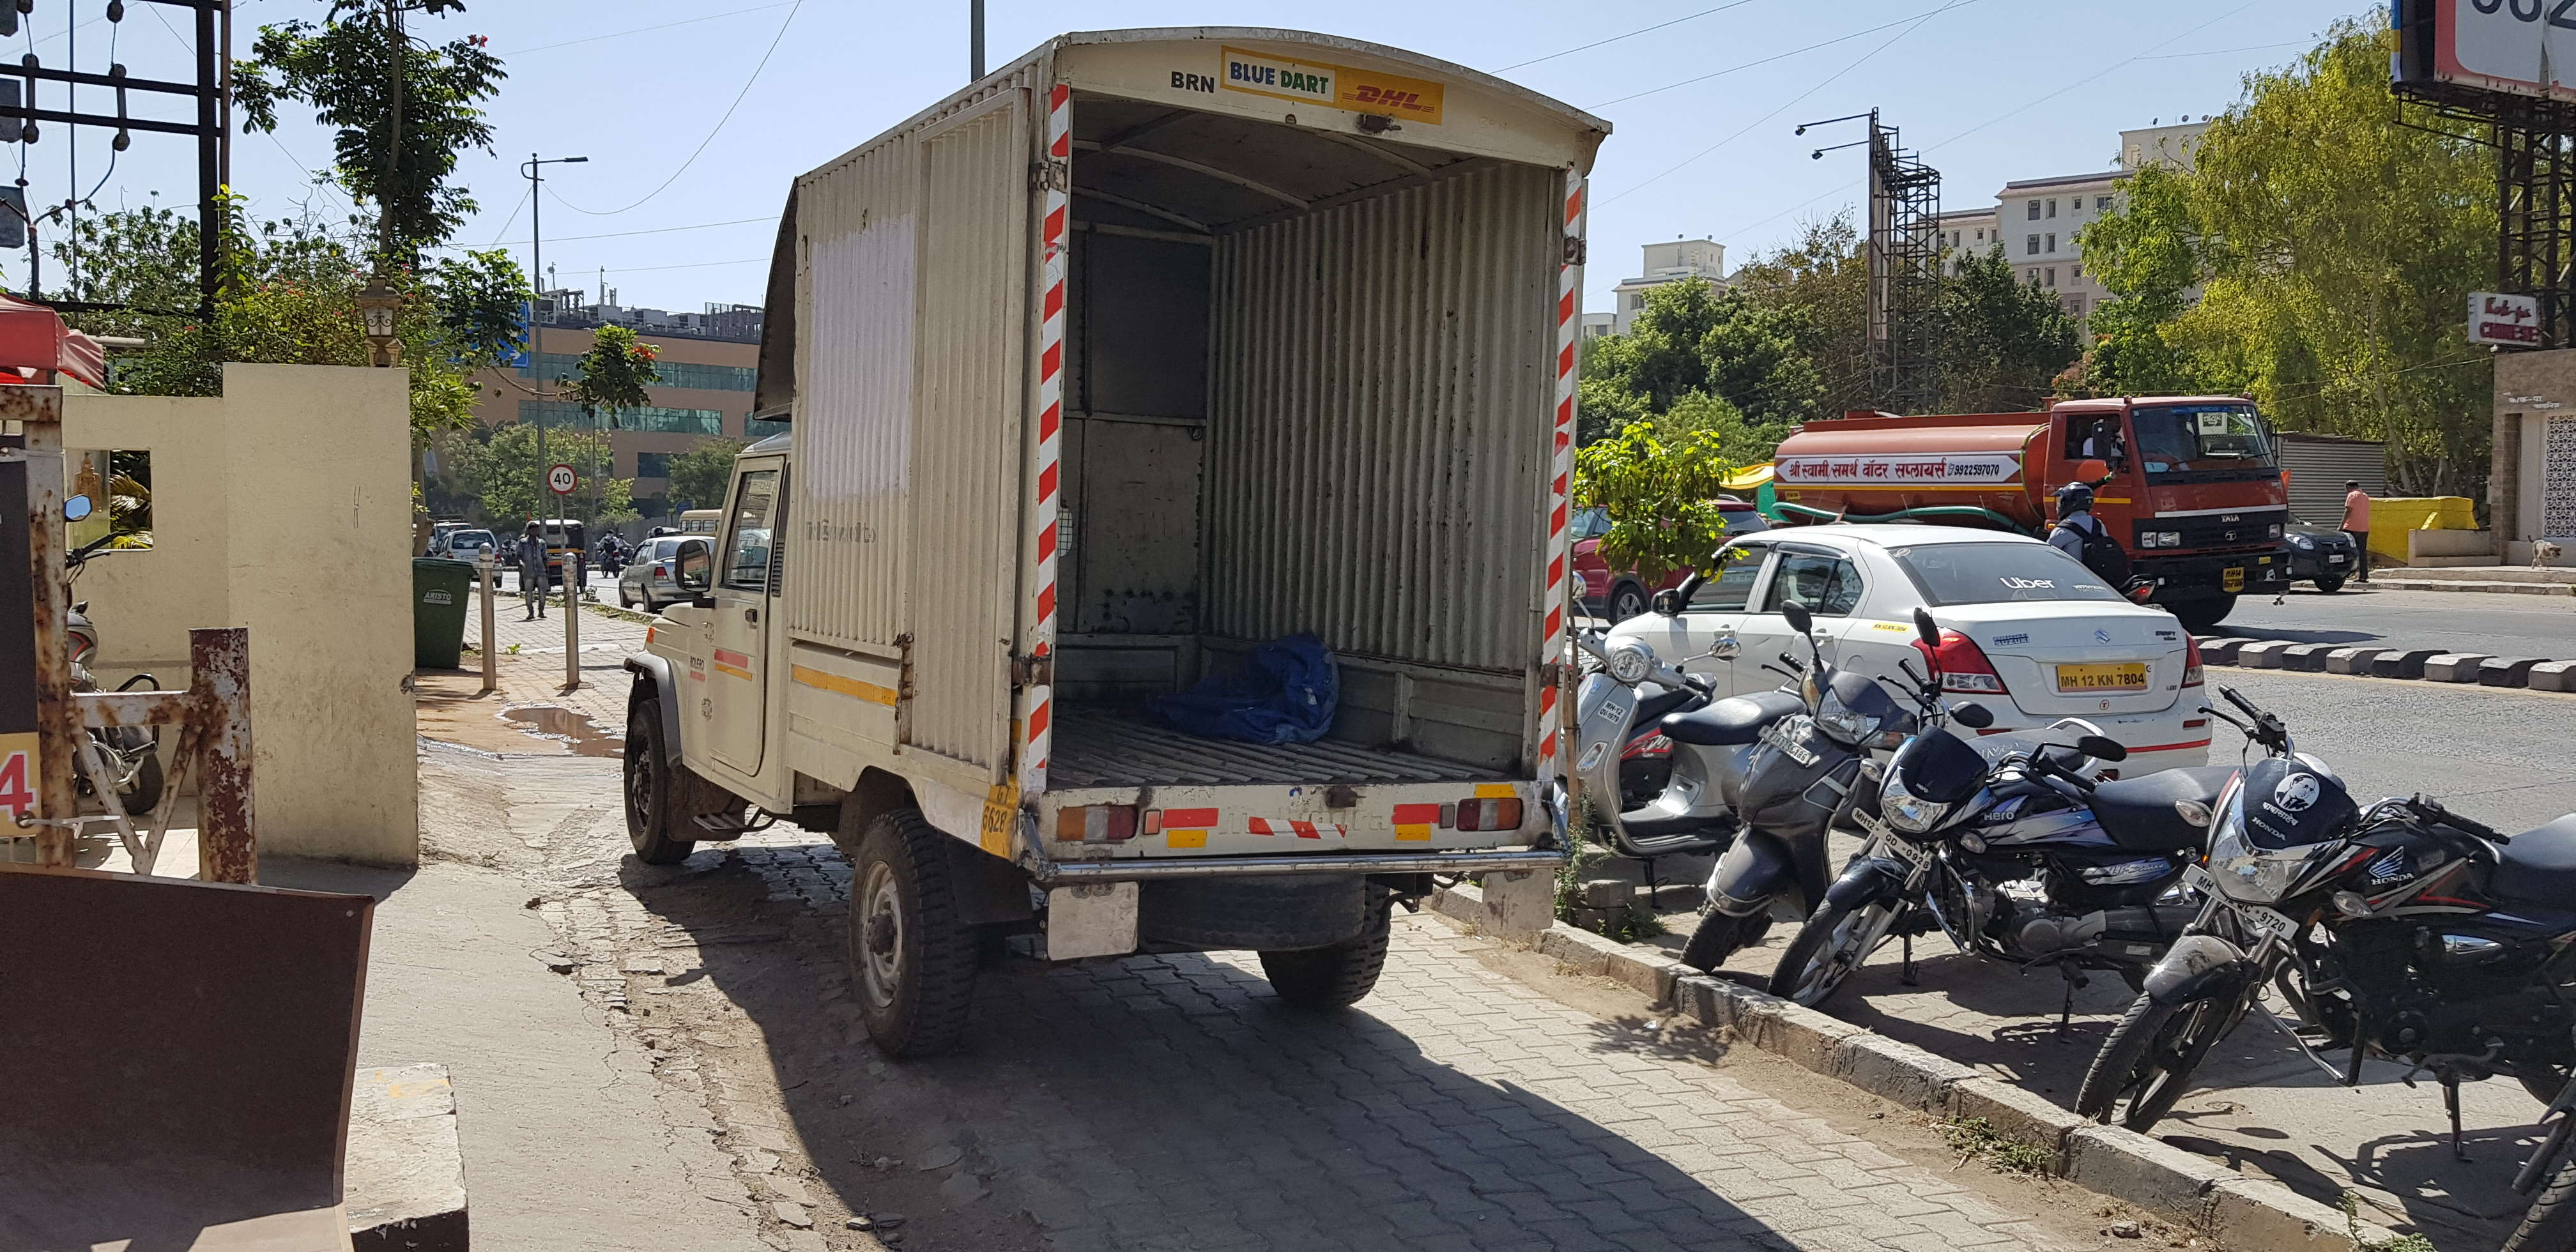 parking ON footpath Blue Dart Courier truck - Times of India